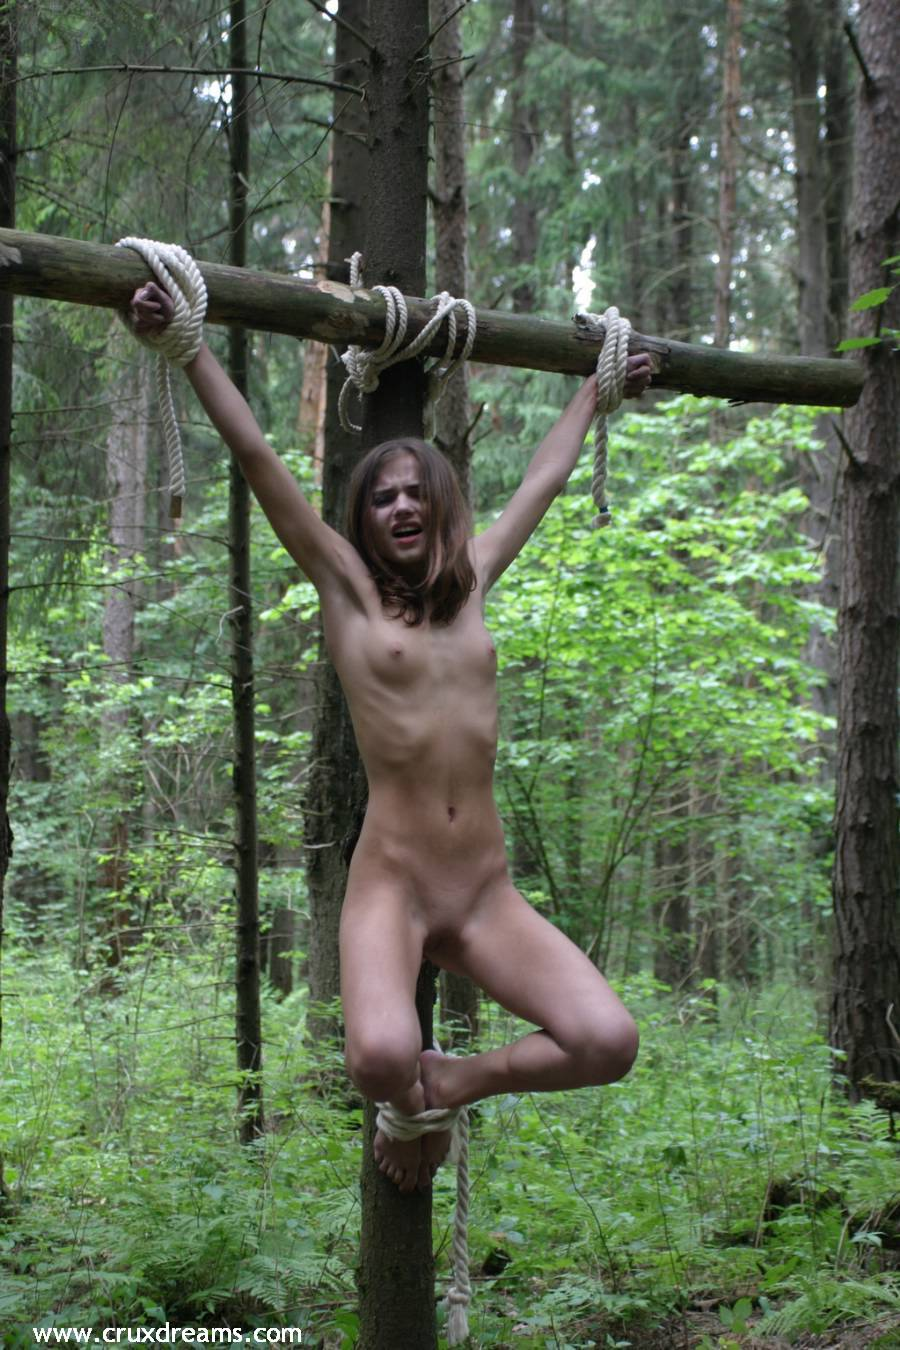 Outdoor bondage with my new friend 7